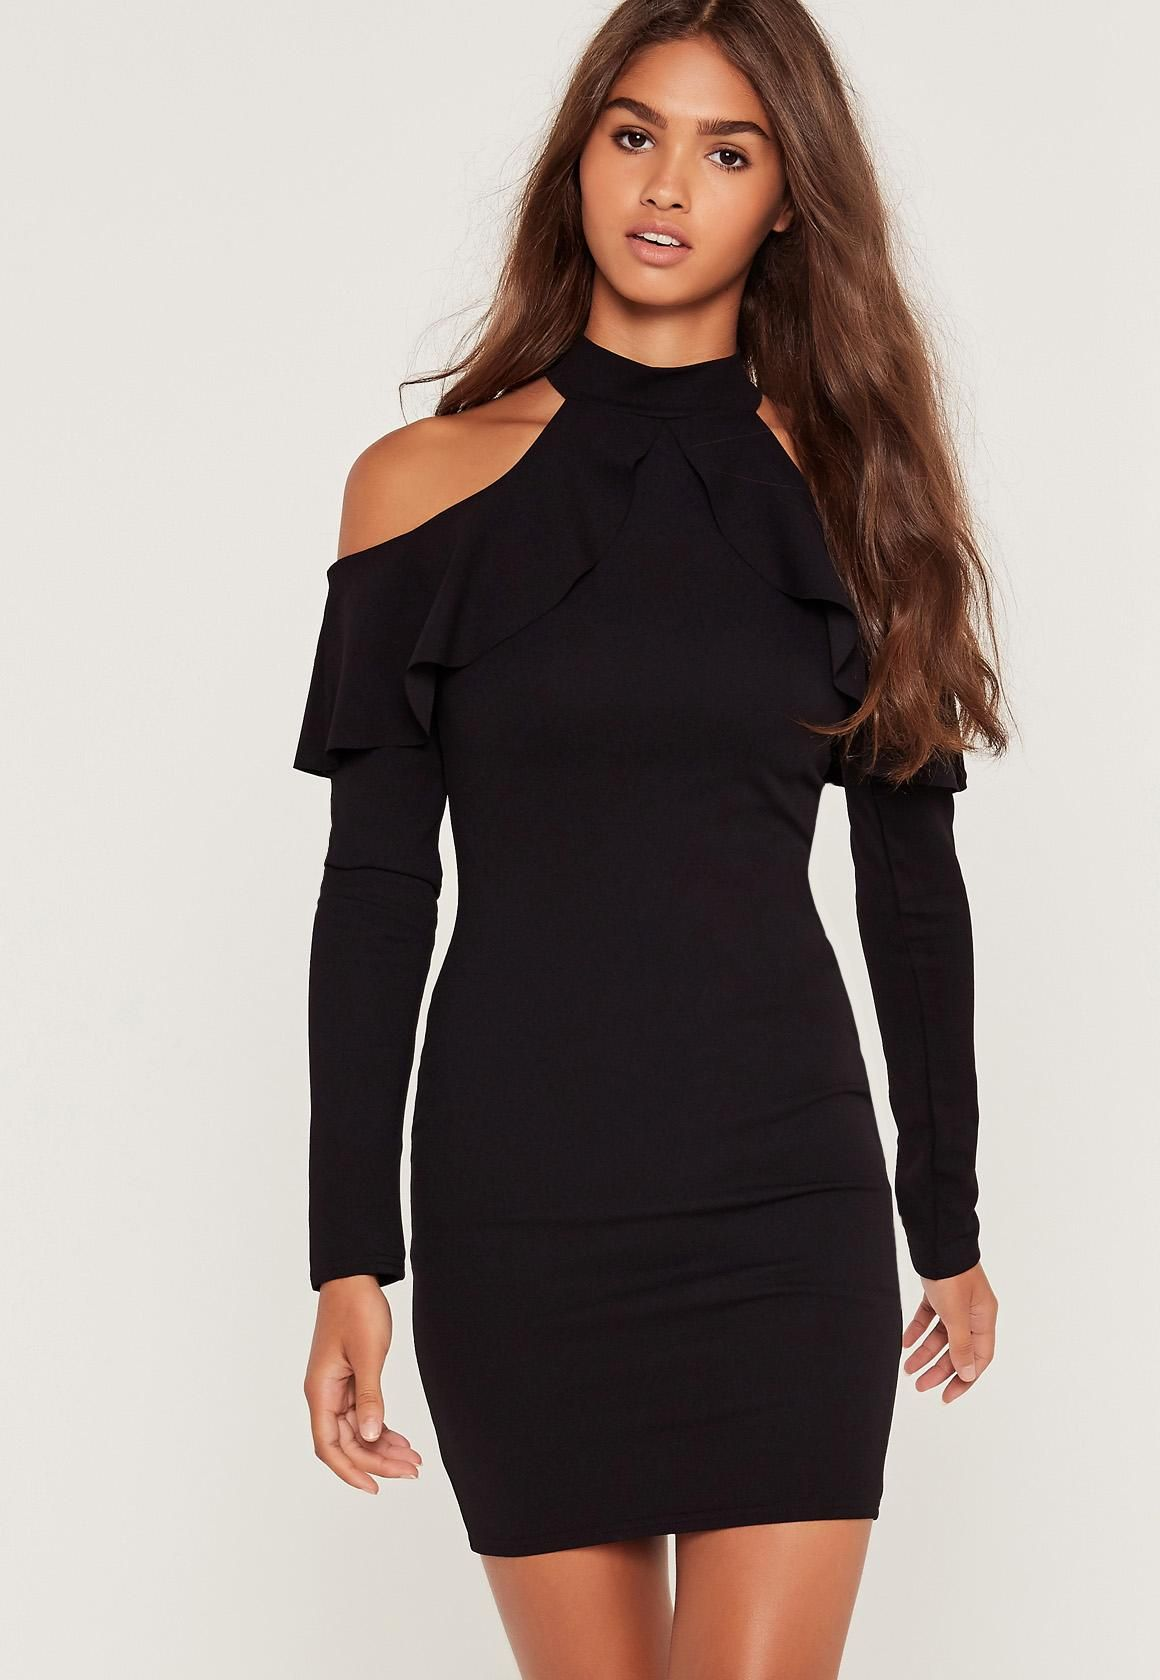 Black dress next day delivery - Long Sleeve Dress Next Day Delivery